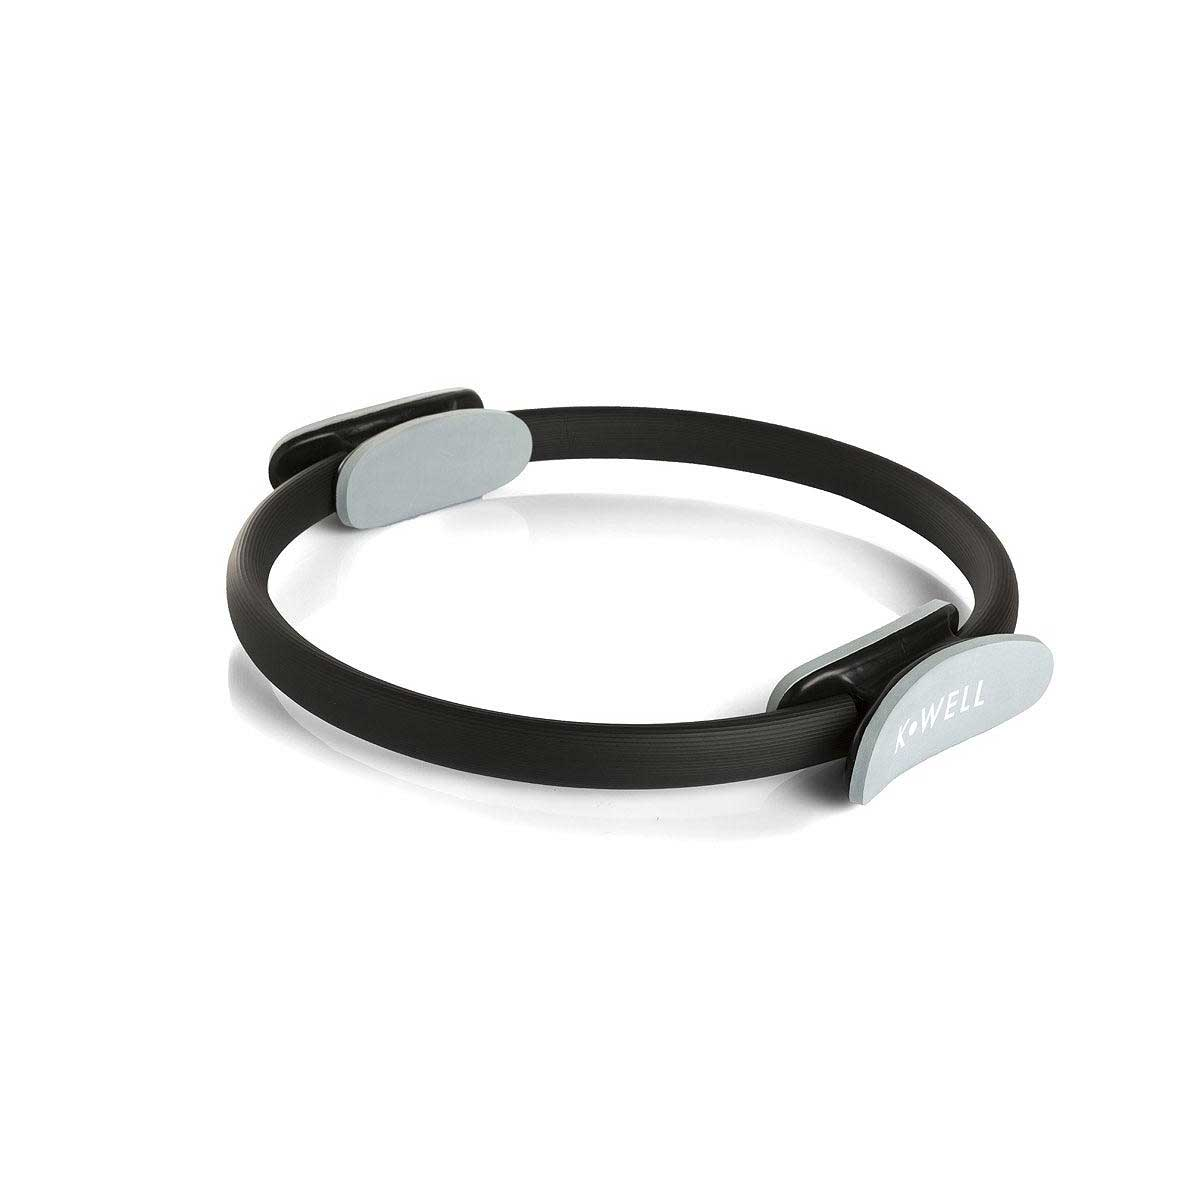 KWELL Pilates Ring